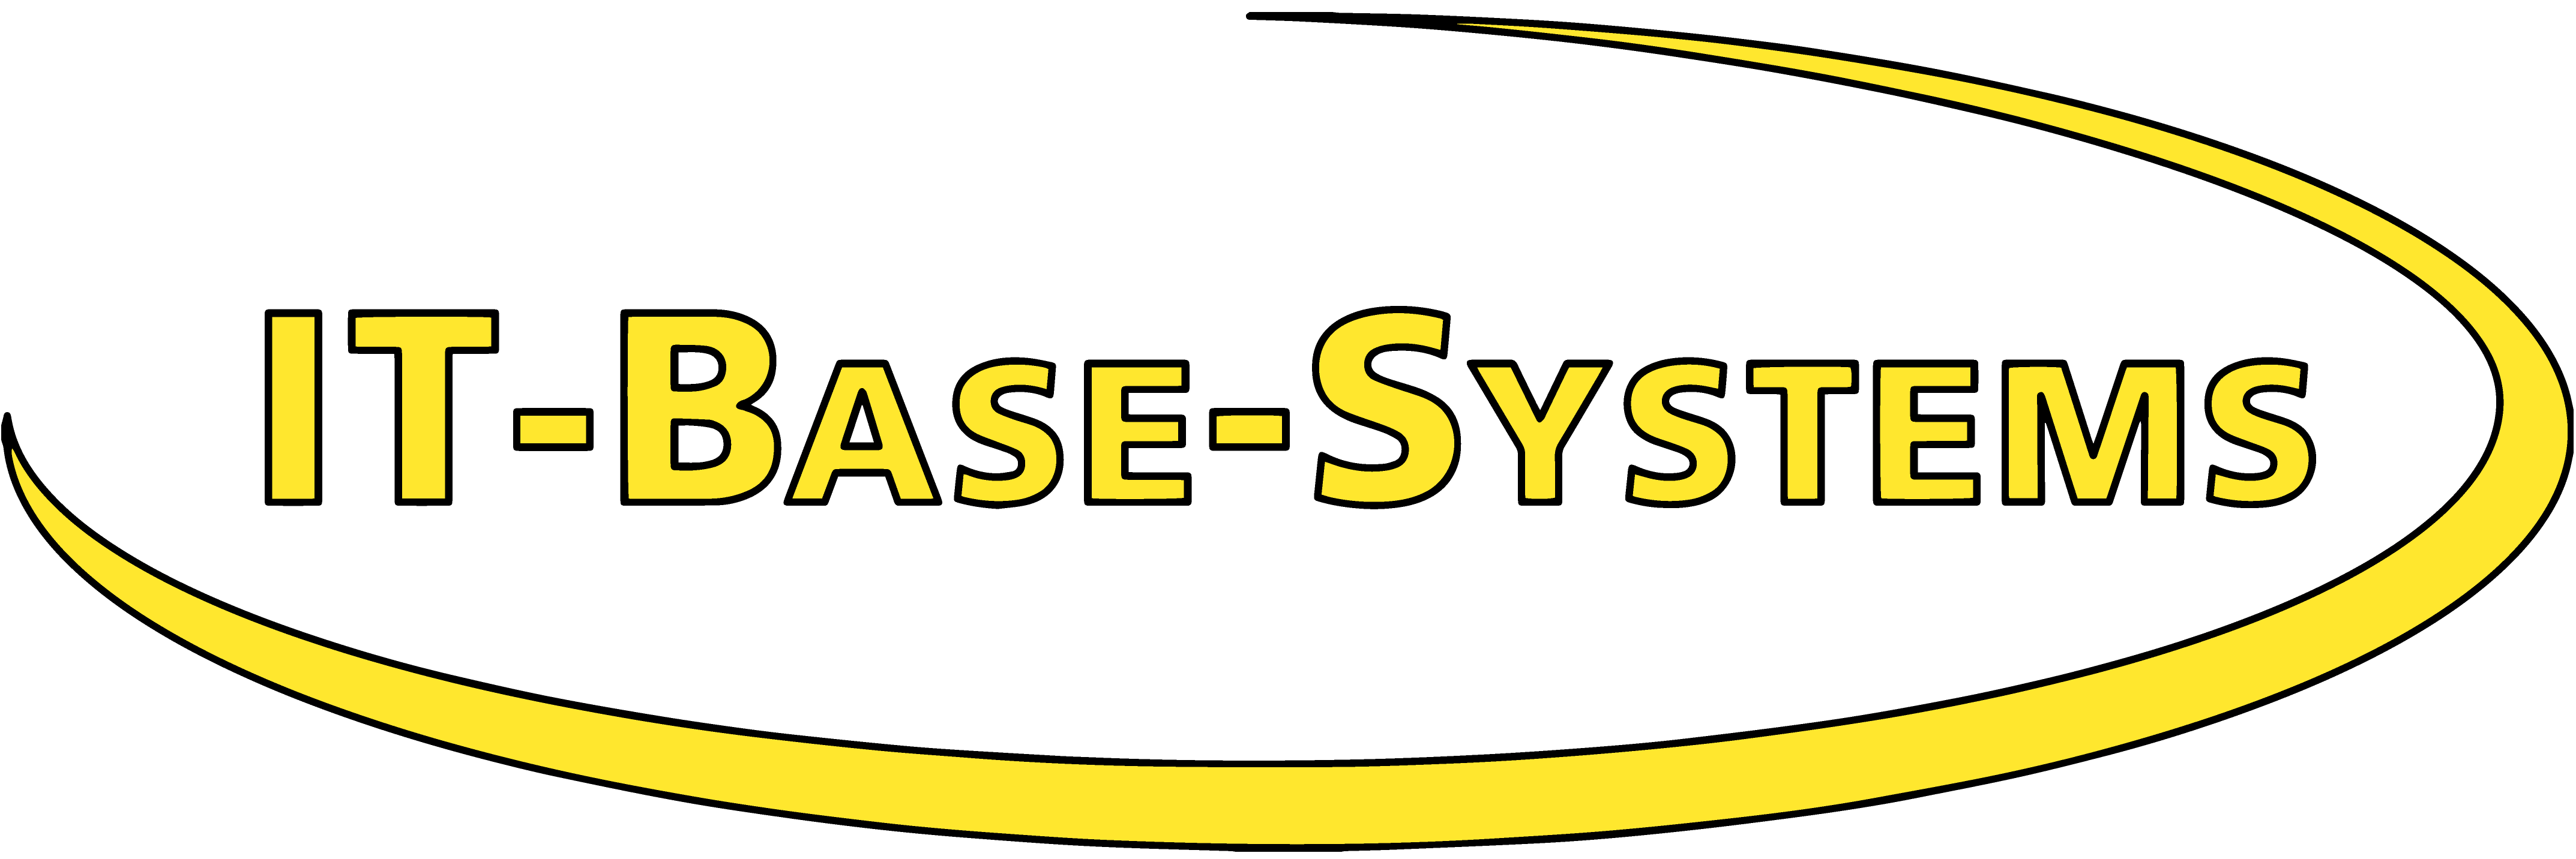 IT-Base-Systems